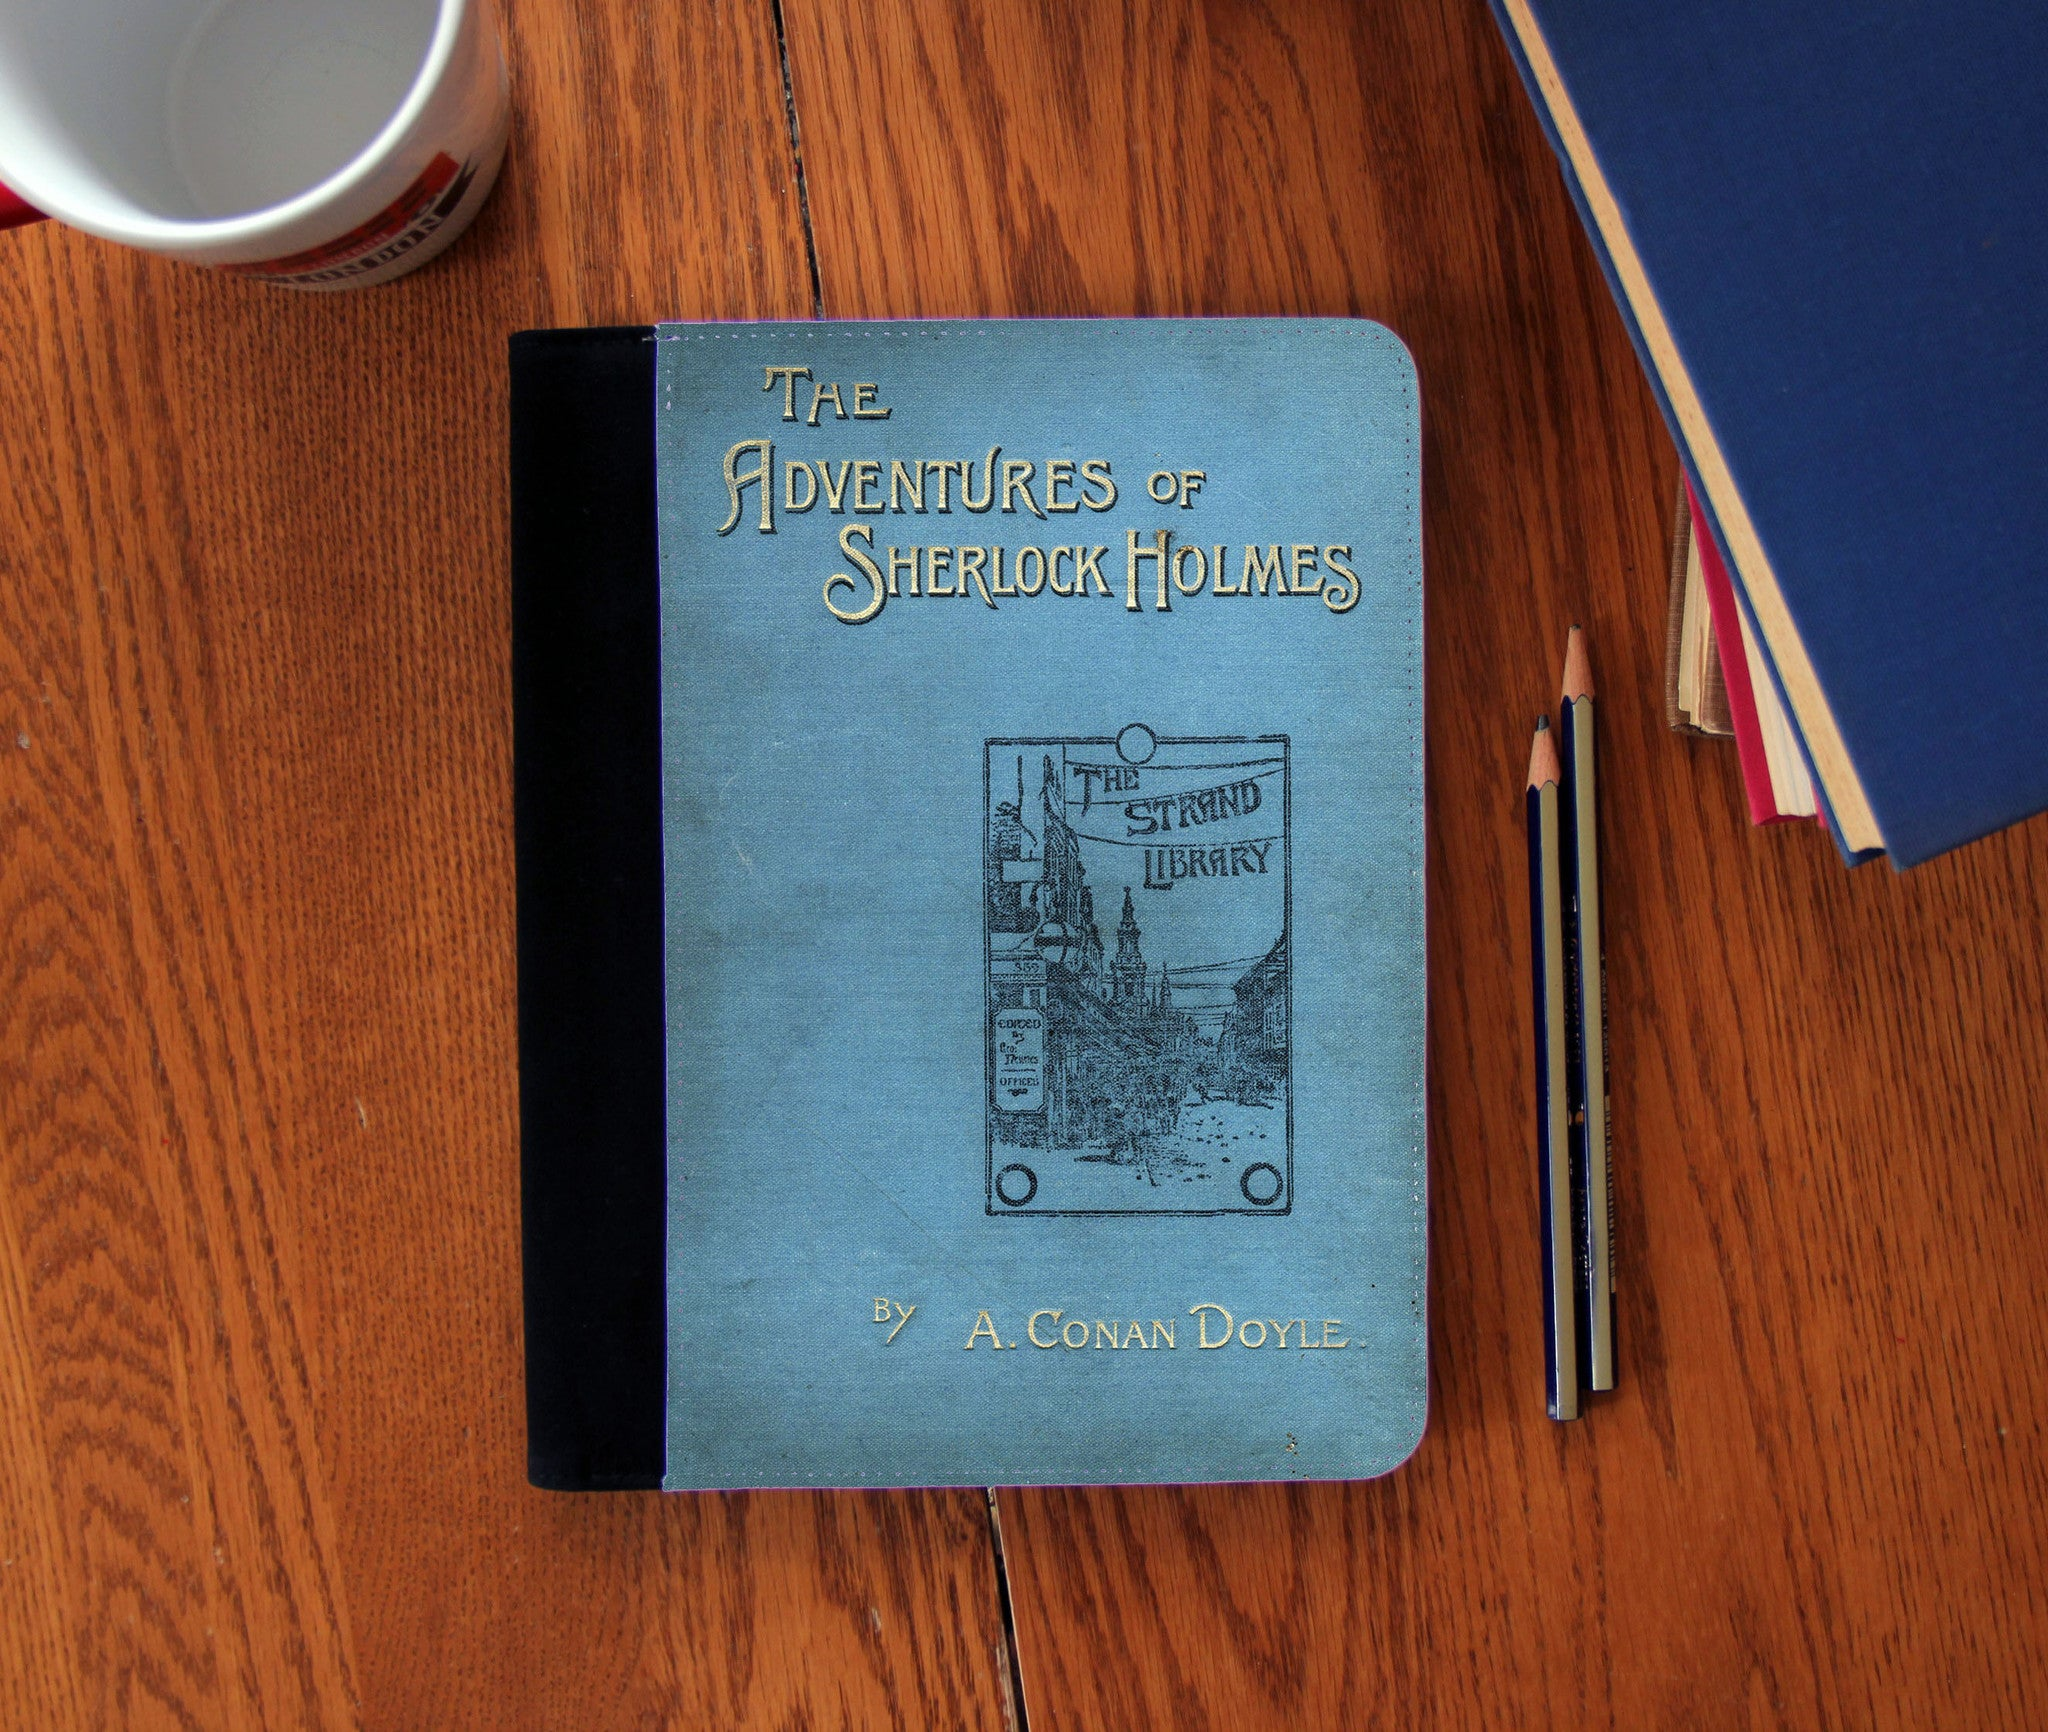 Adventures of Sherlock Holmes Book Cover Faux Suede Notebook 3 Sizes! - Consulting Fangeeks - 1